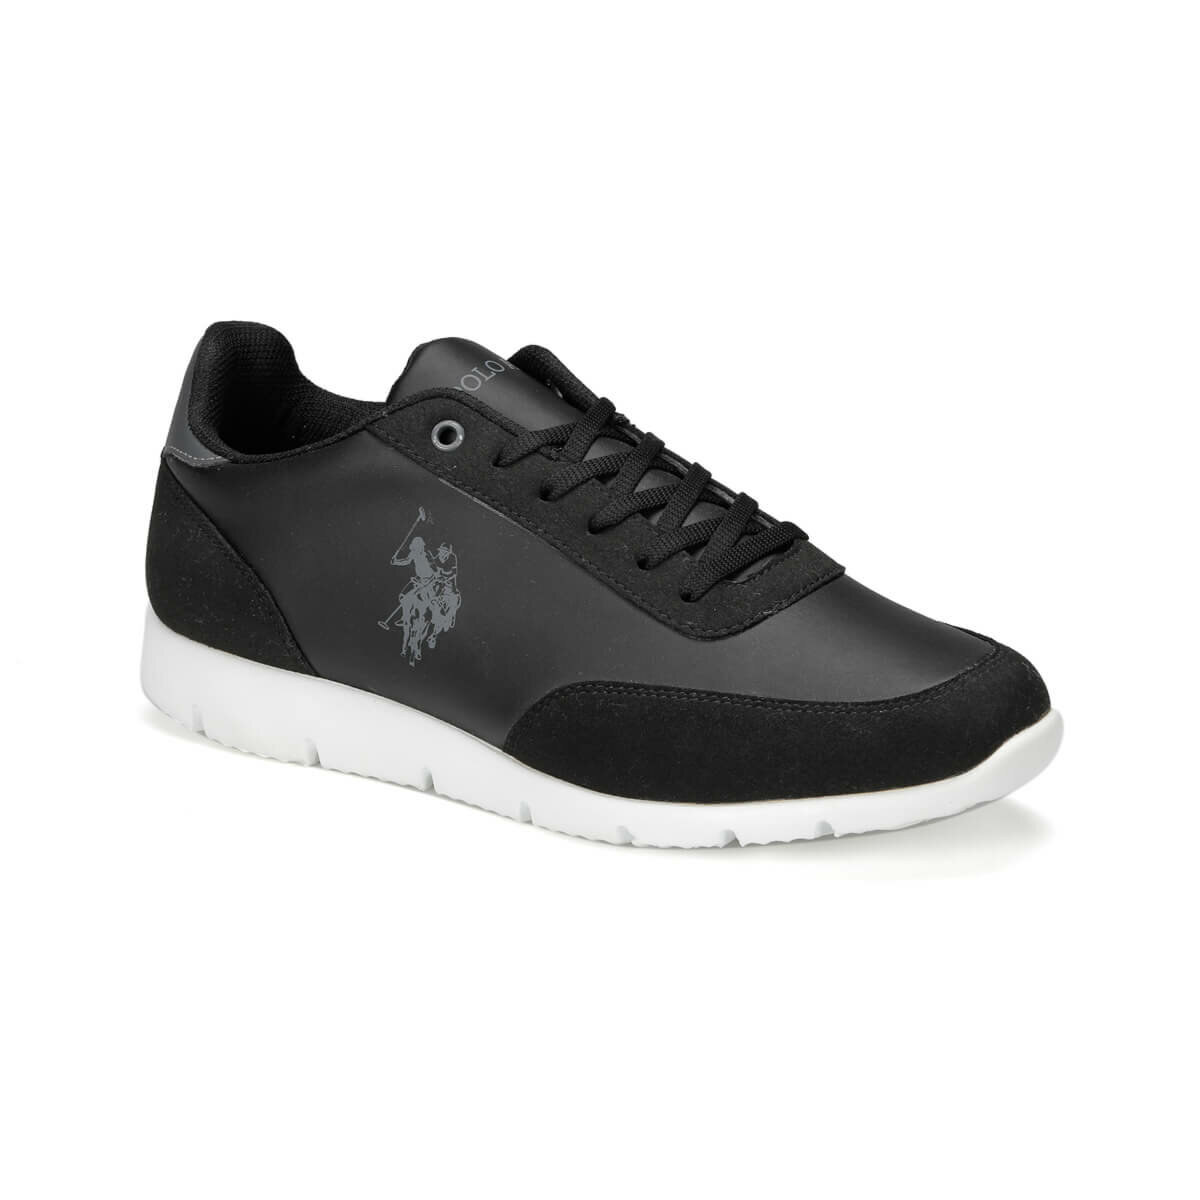 FLO BONE WT 9PR Black Men 'S Sneaker Shoes U.S. POLO ASSN.